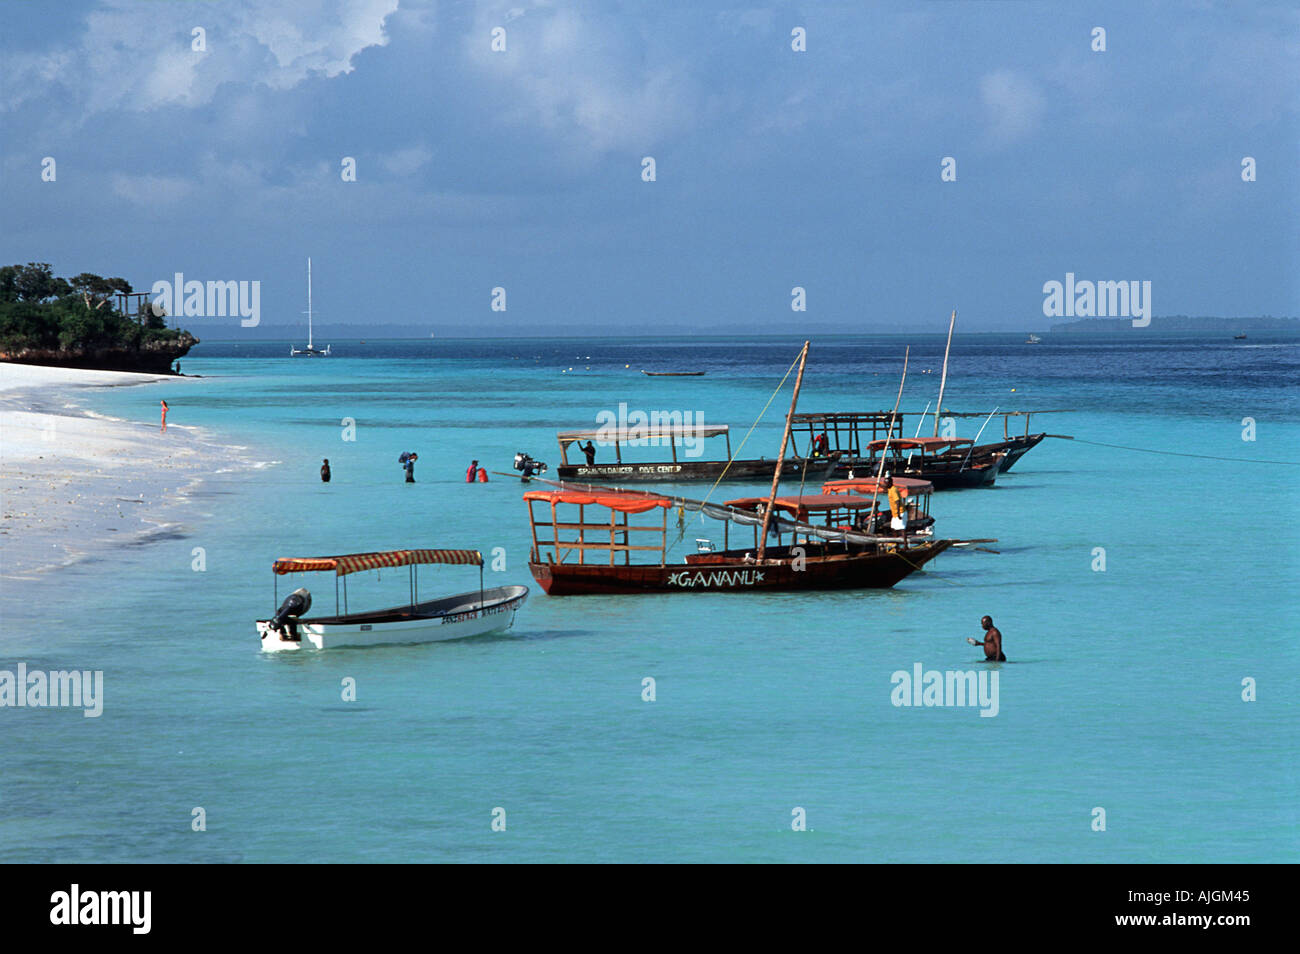 Boats anchored off the beach at Nungwi Unguja Zanzibar Loading up a dive boat in the background Tanzania East Africa - Stock Image